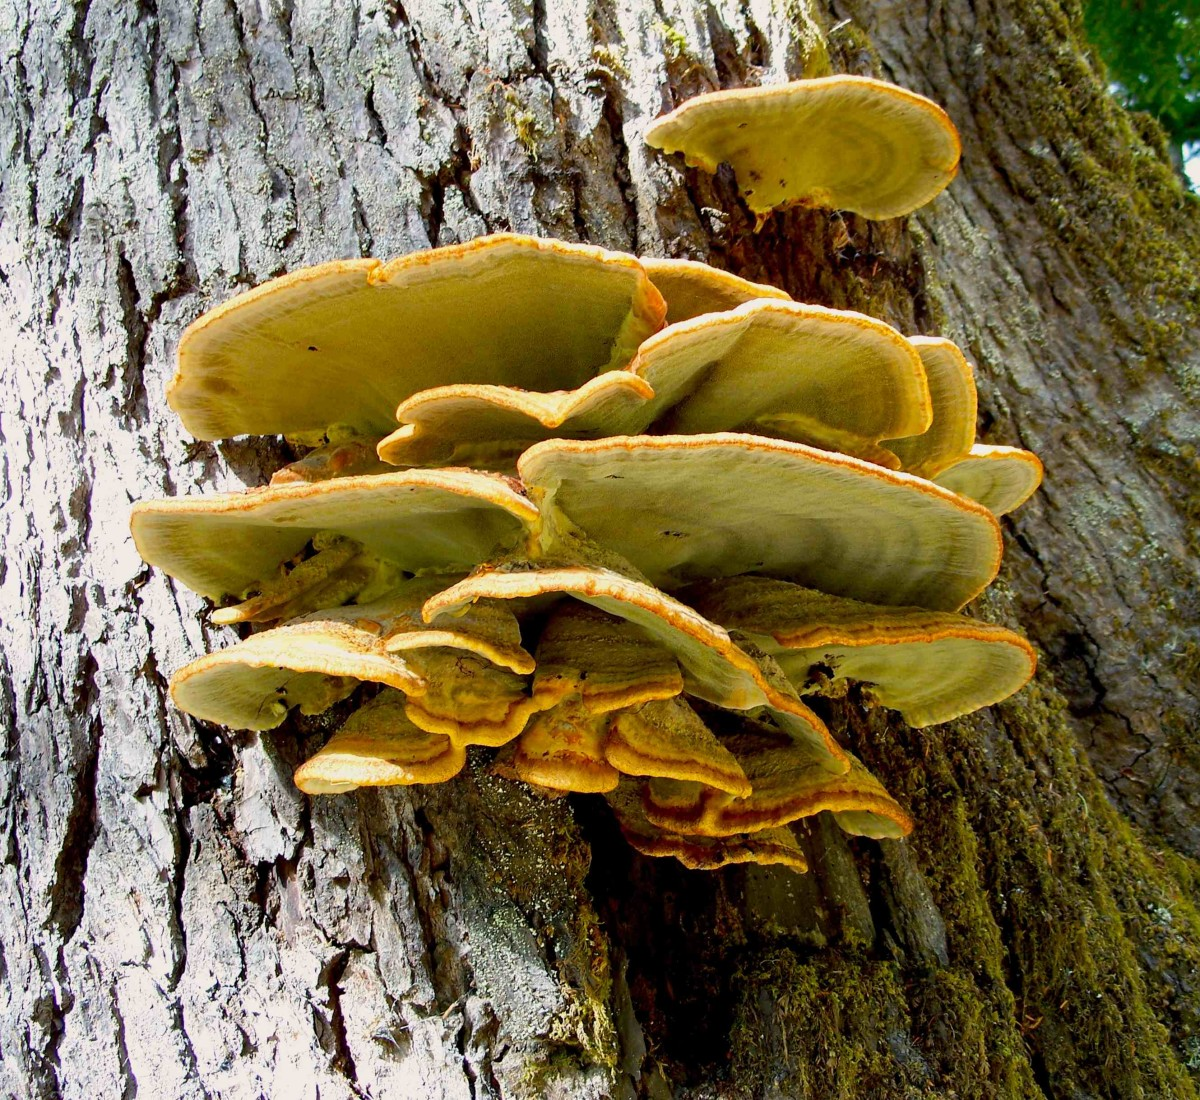 Fungus in the rain forest.